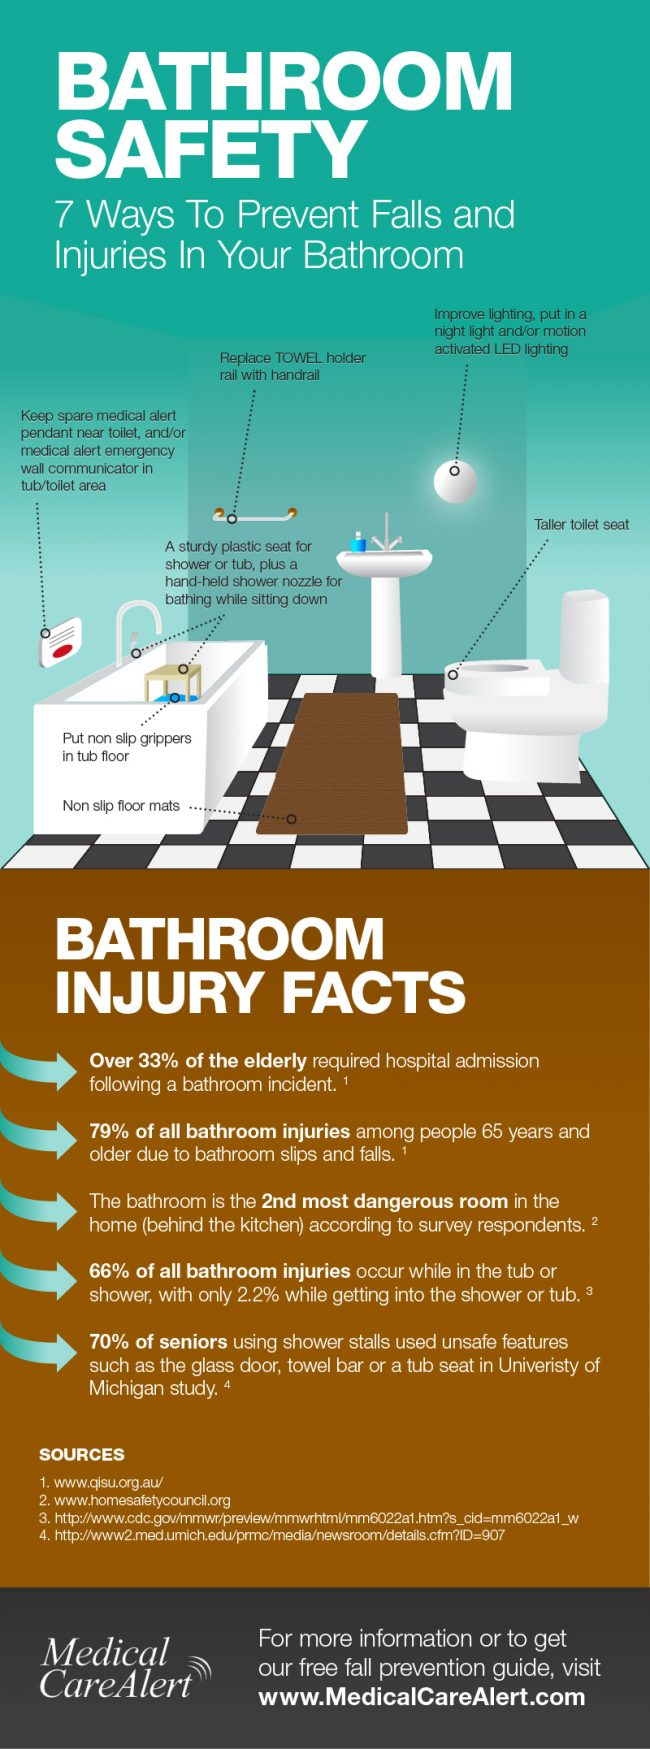 Bathroom Safety 7 Ways To Prevent Falls And Injuries In